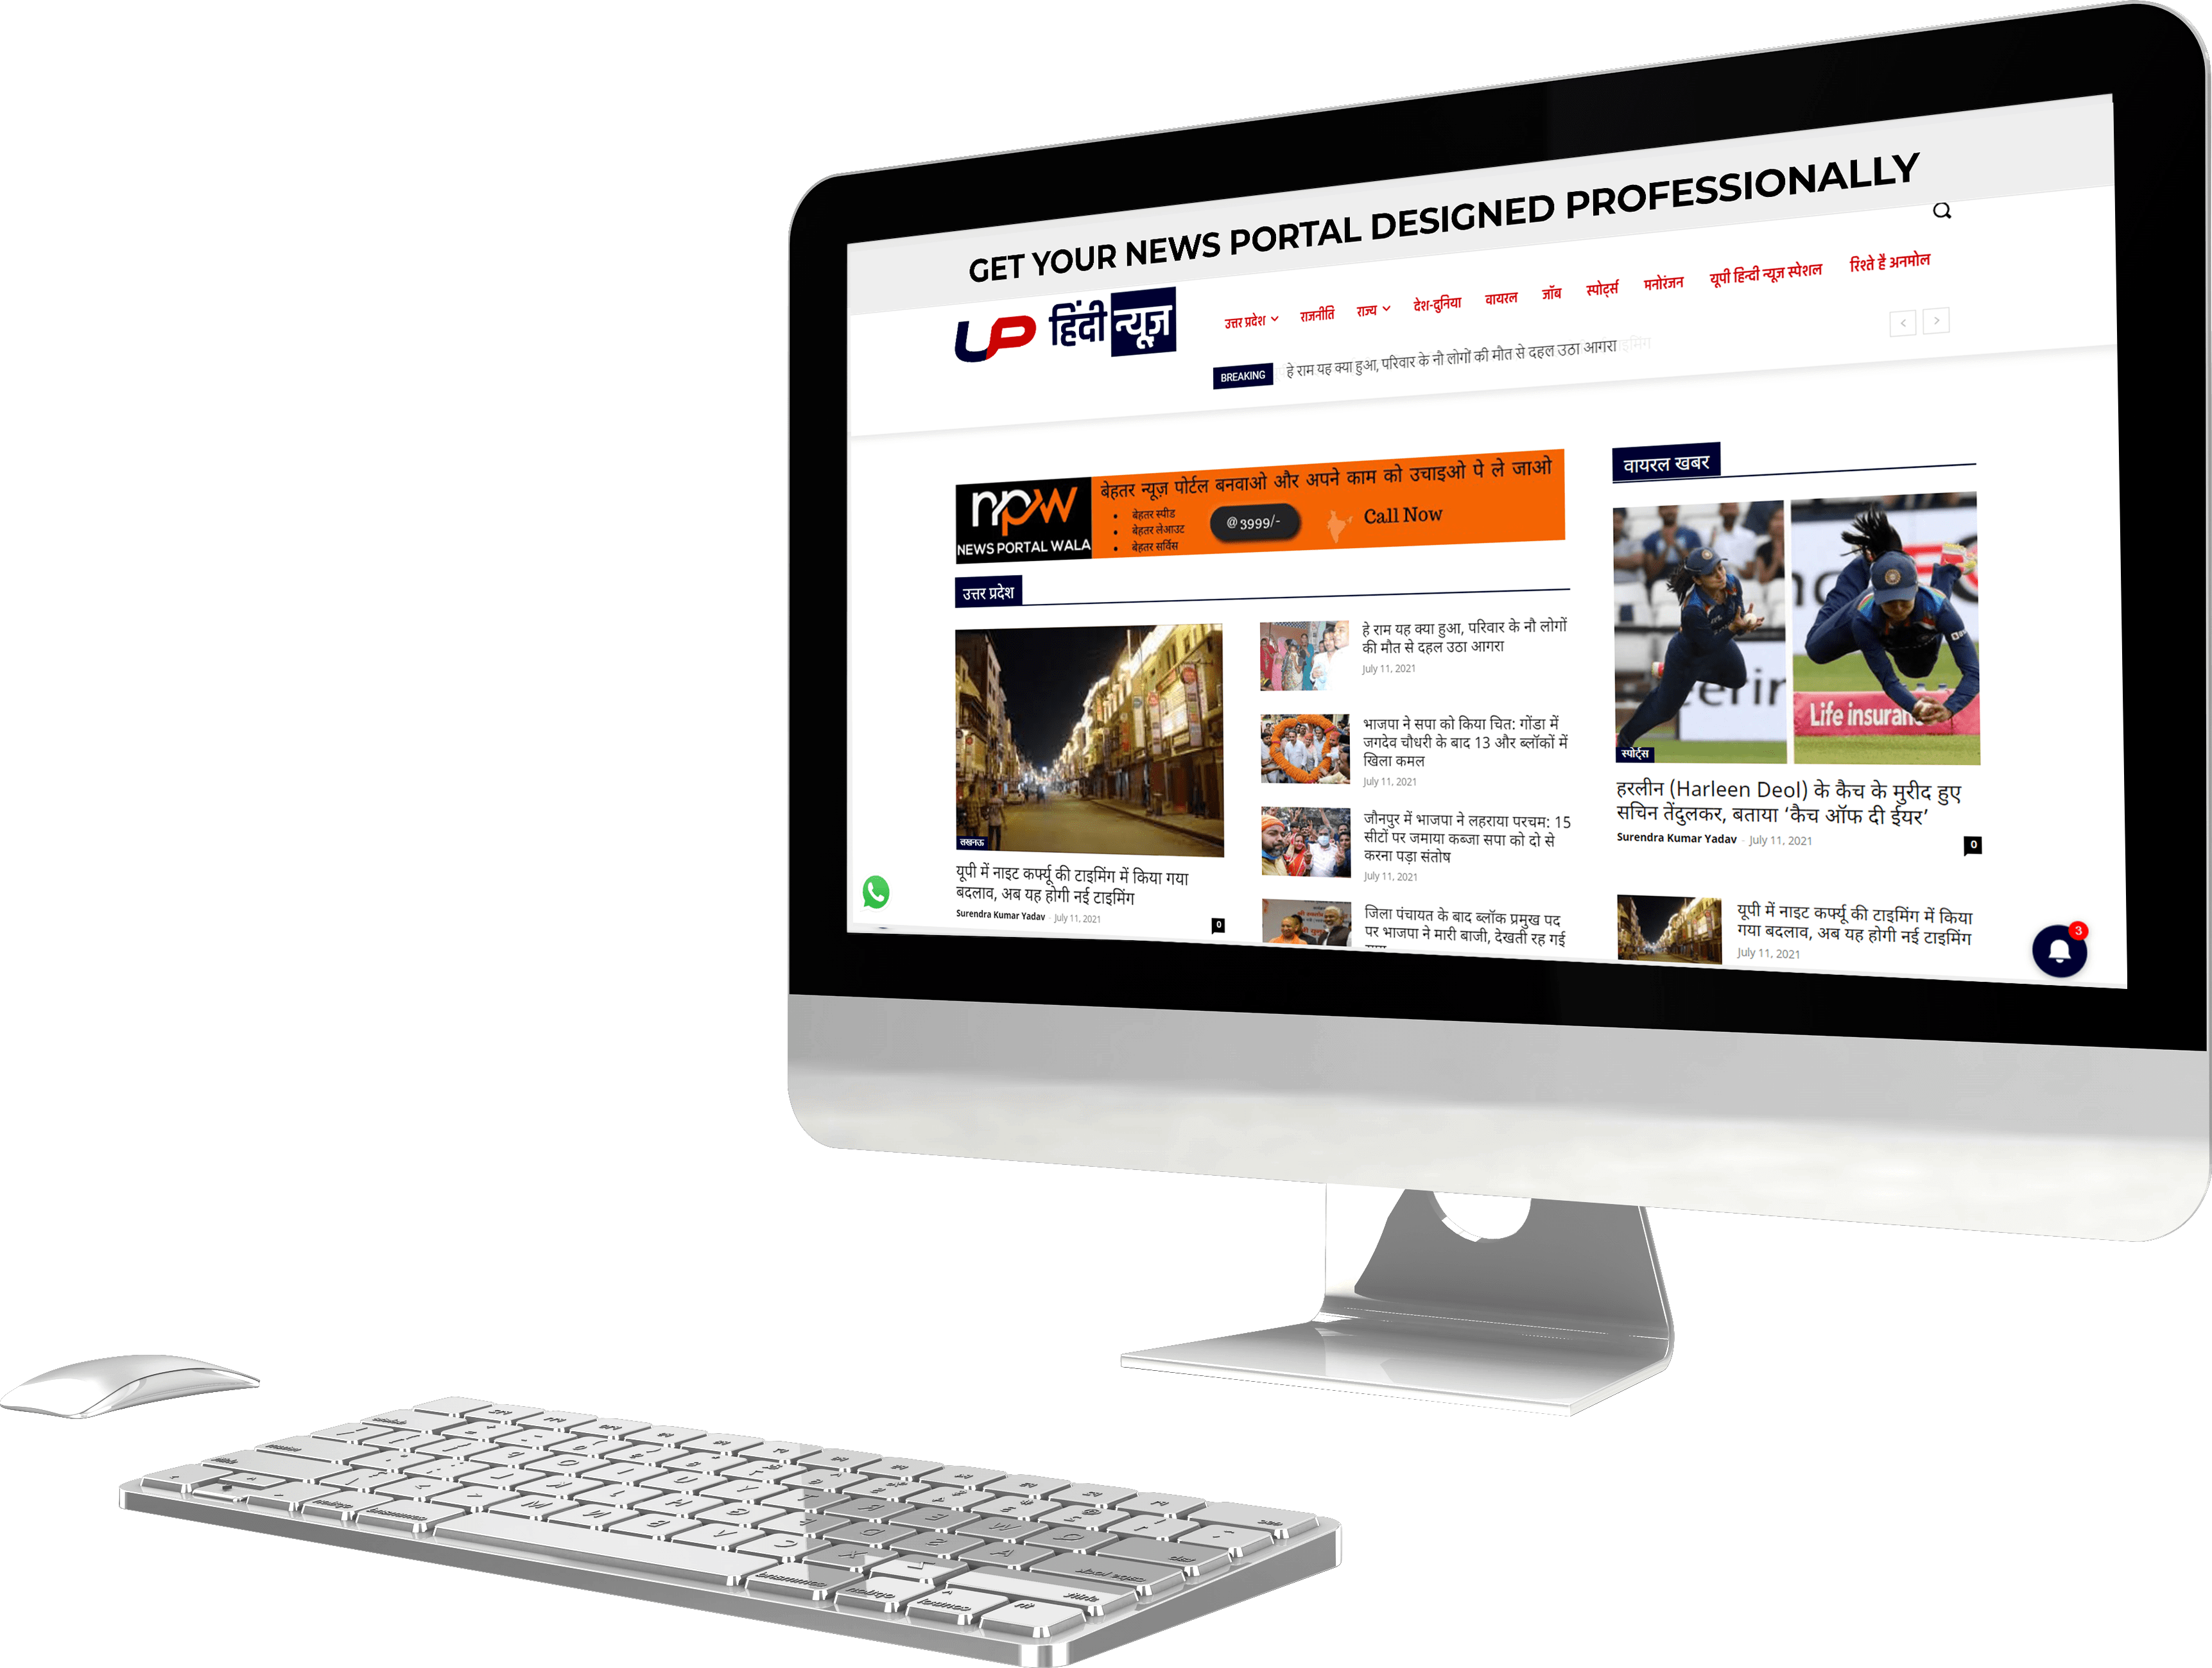 <H1>Only Place for complete News Portal Development</H1> <style>     h1 { color: #ffffff; }   </style>